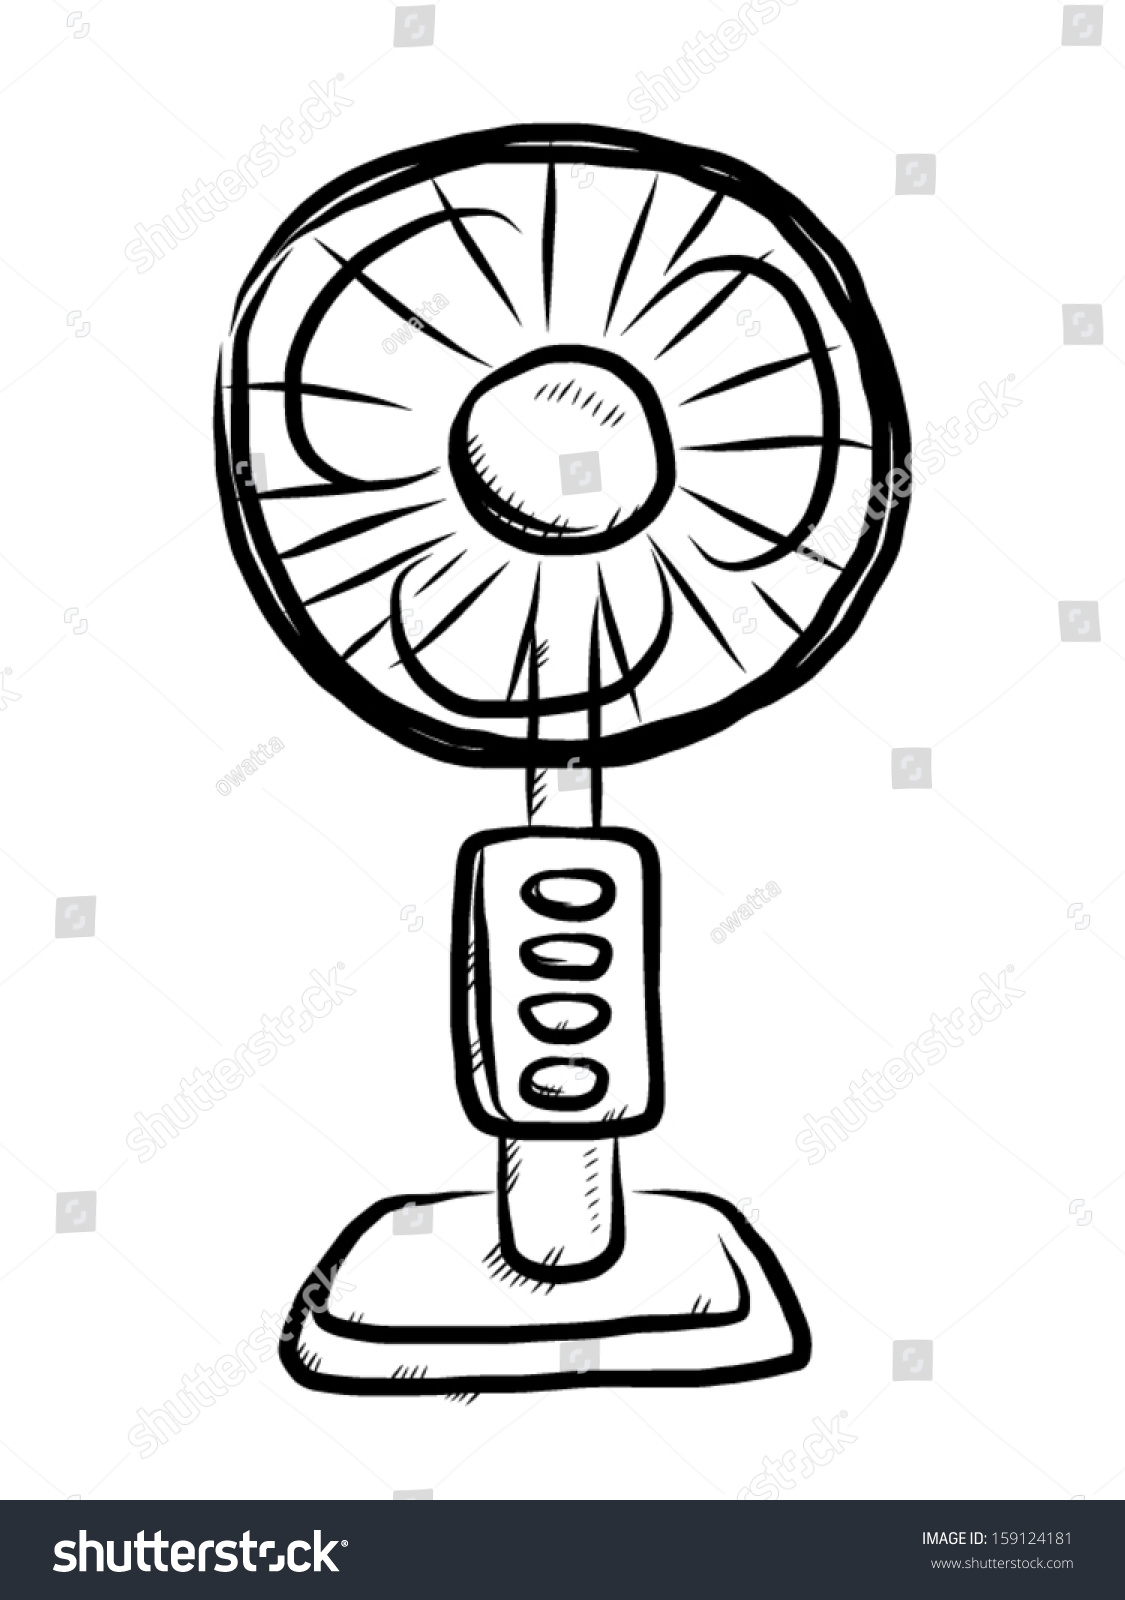 A Sketch Of A Electric Fan : Electric fan sketch